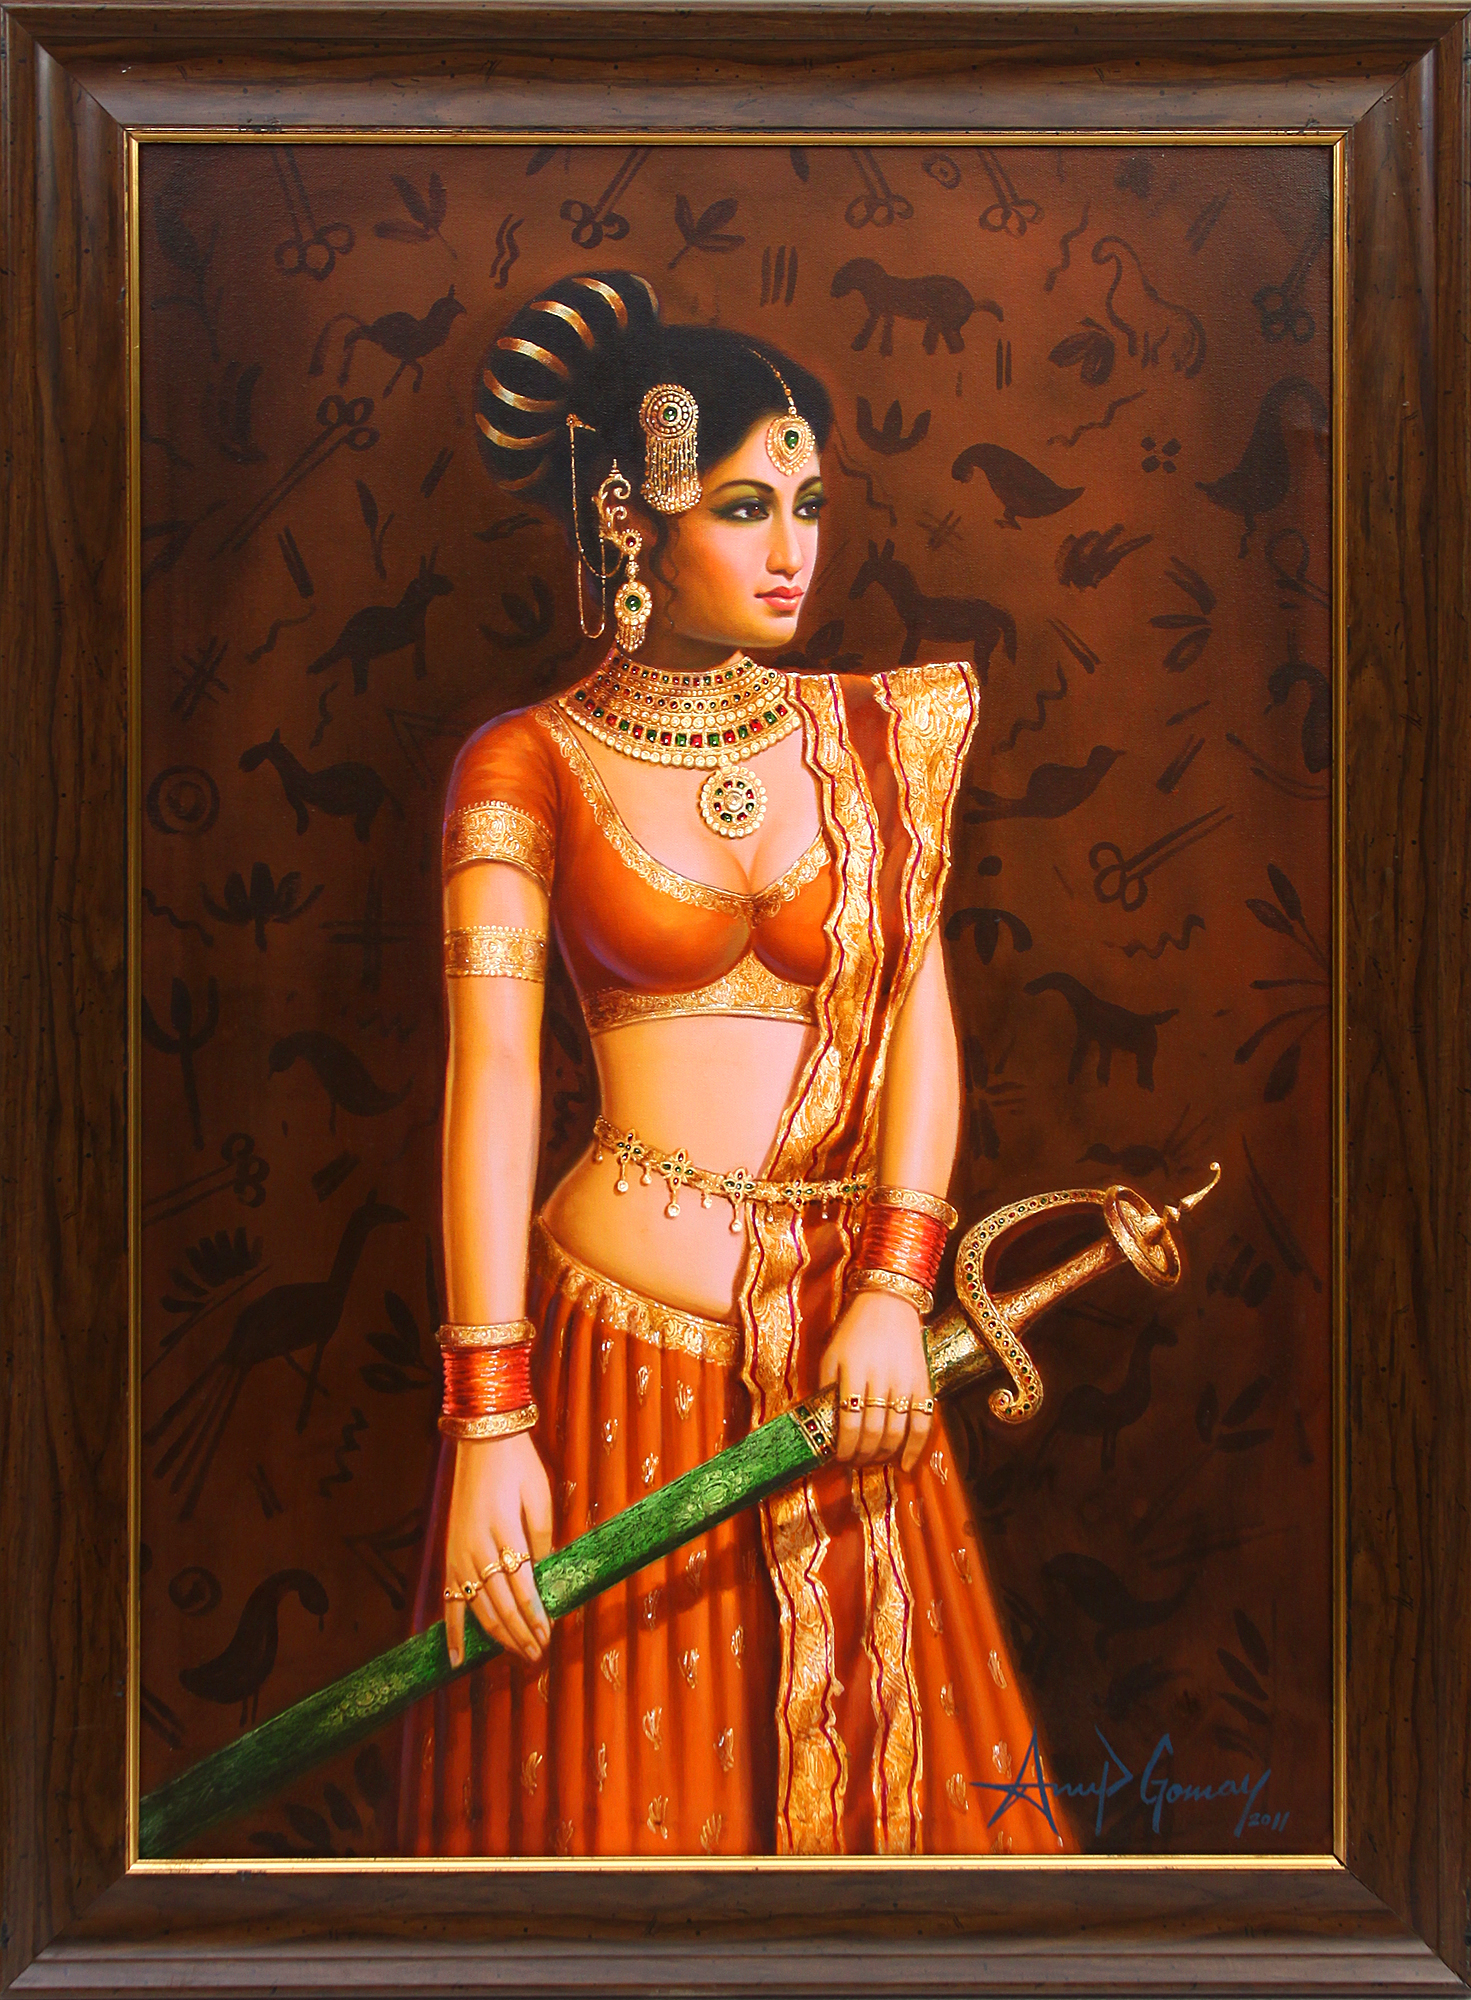 Bridal Girl Wallpaper The Lady With The Sword Framed Oil Painting